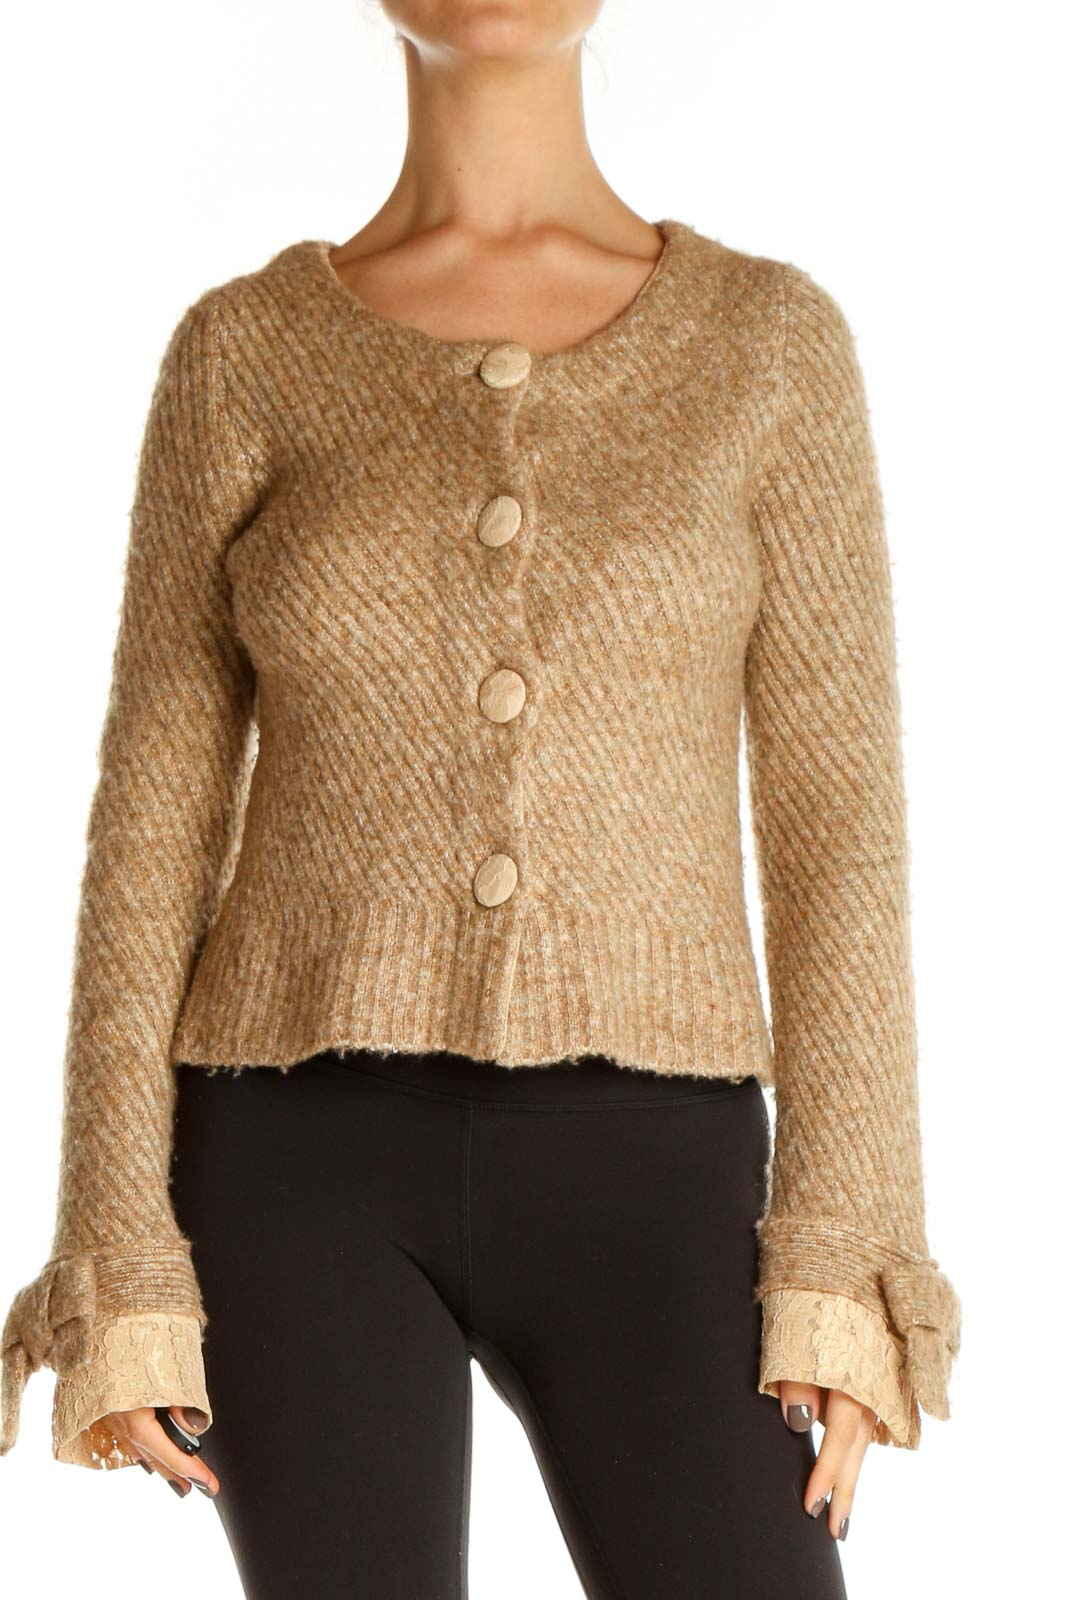 Brown Textured Retro Sweater Front